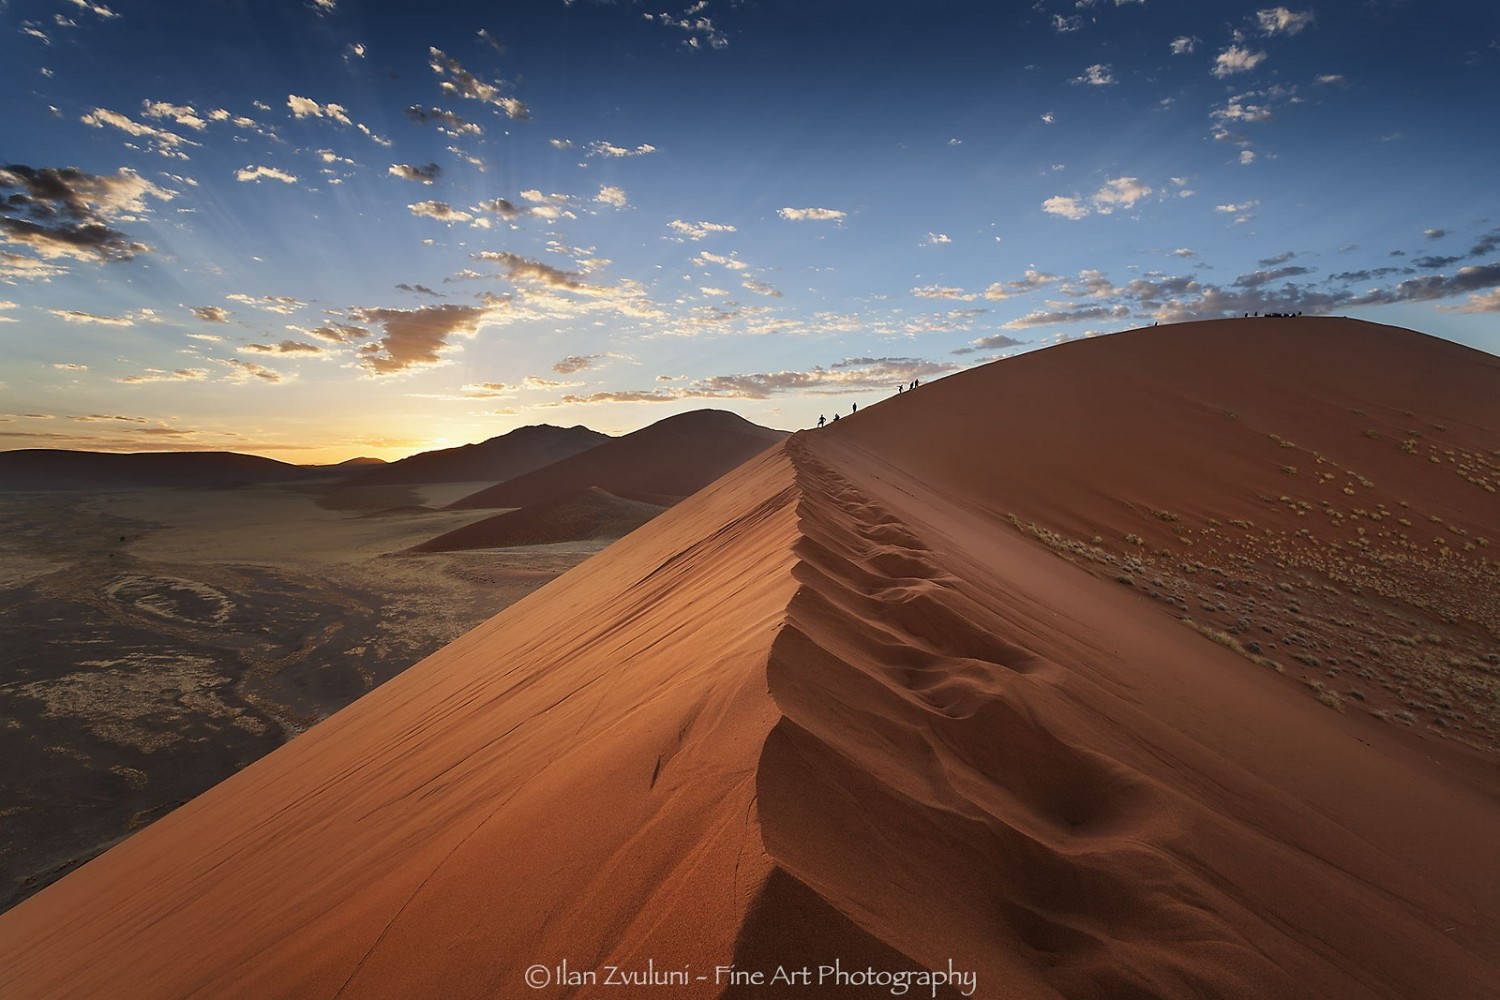 25 Photographs of Some of the Largest Sand Dunes on Earth